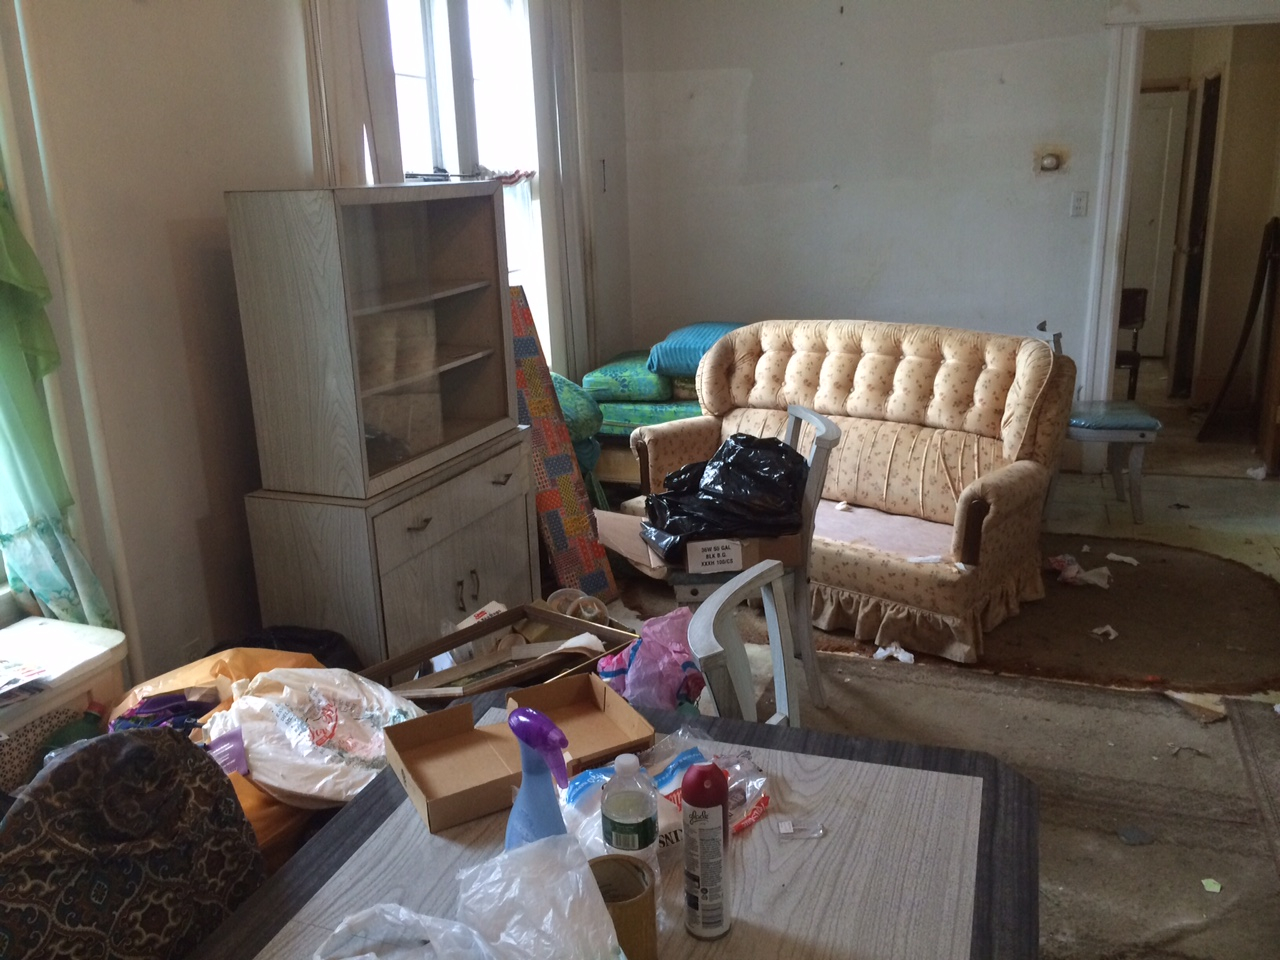 SOFA COUCH REMOVAL Sofabed Pick Up In Queens NY - Sofa removal nyc